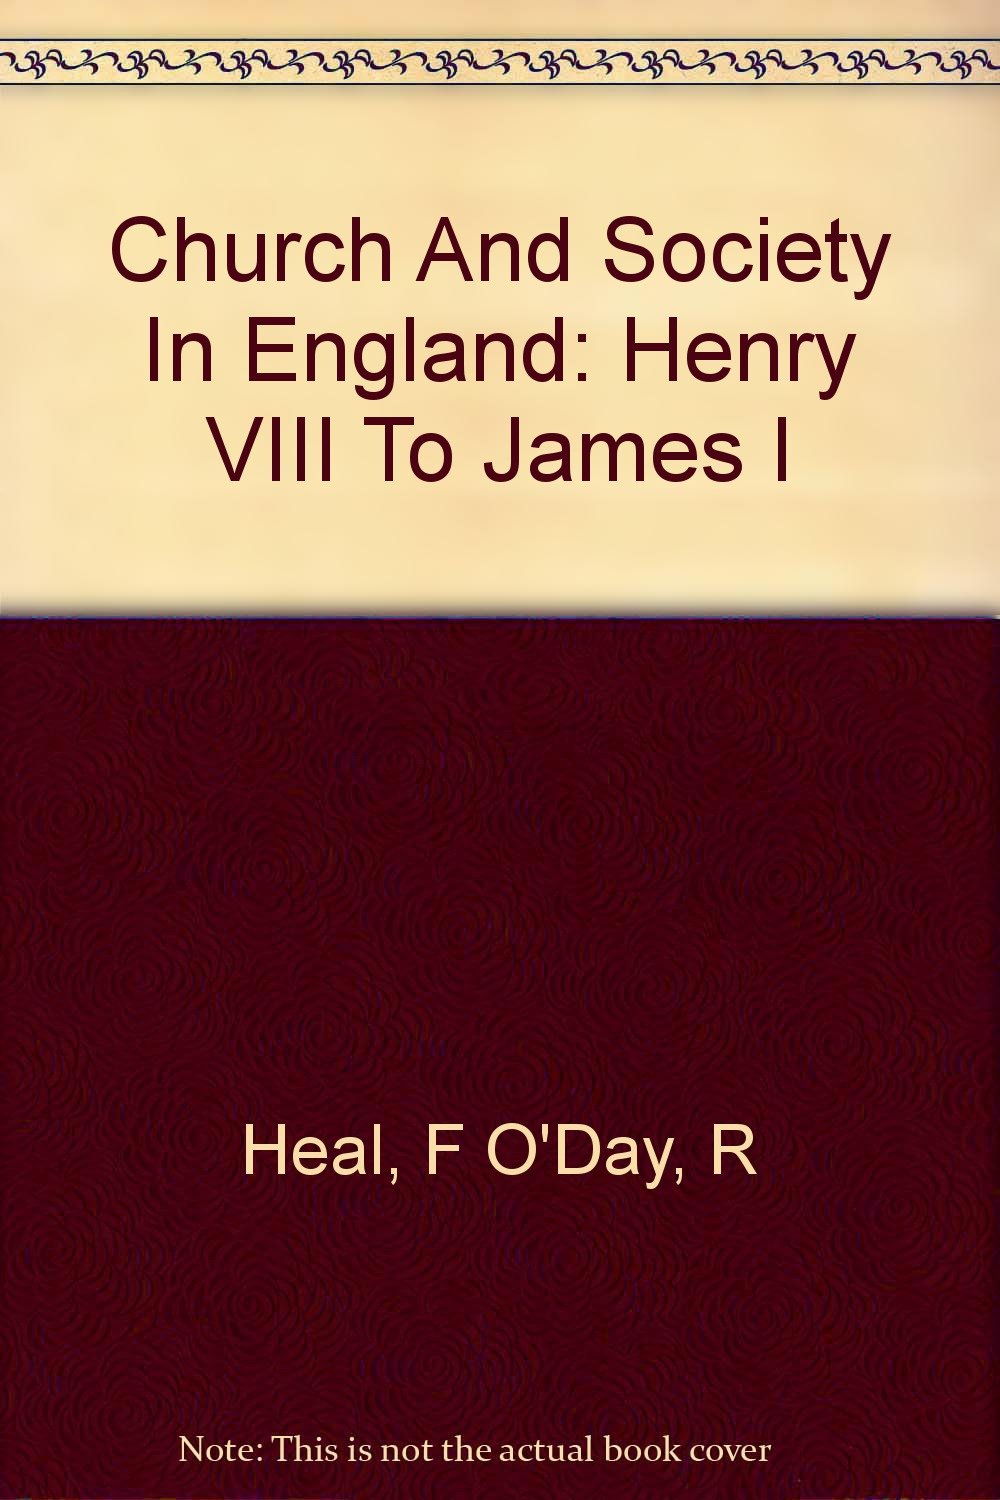 The Kings of England: 1509 to 1820